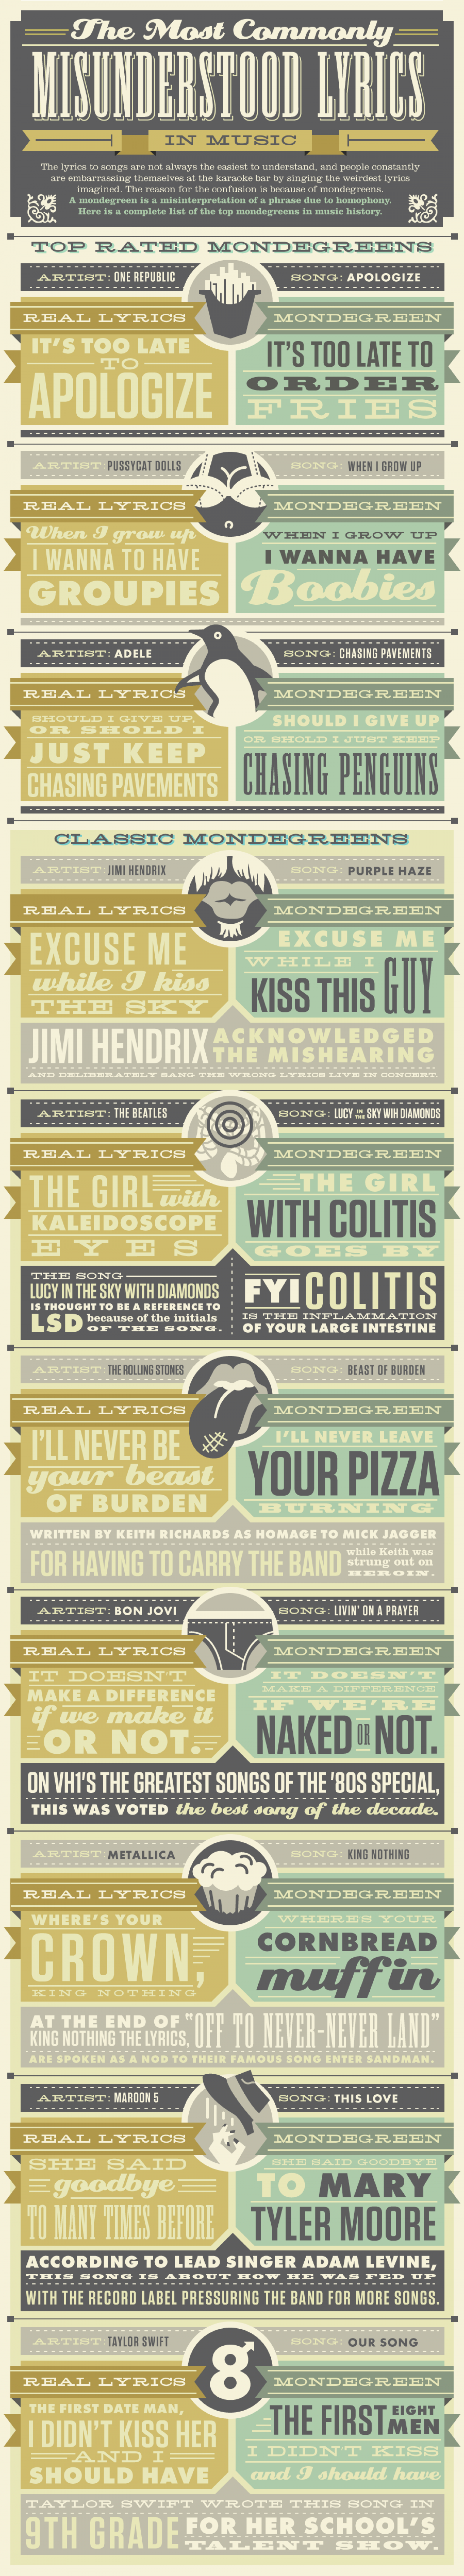 The Most Commonly Misunderstood Lyrics in Music Infographic